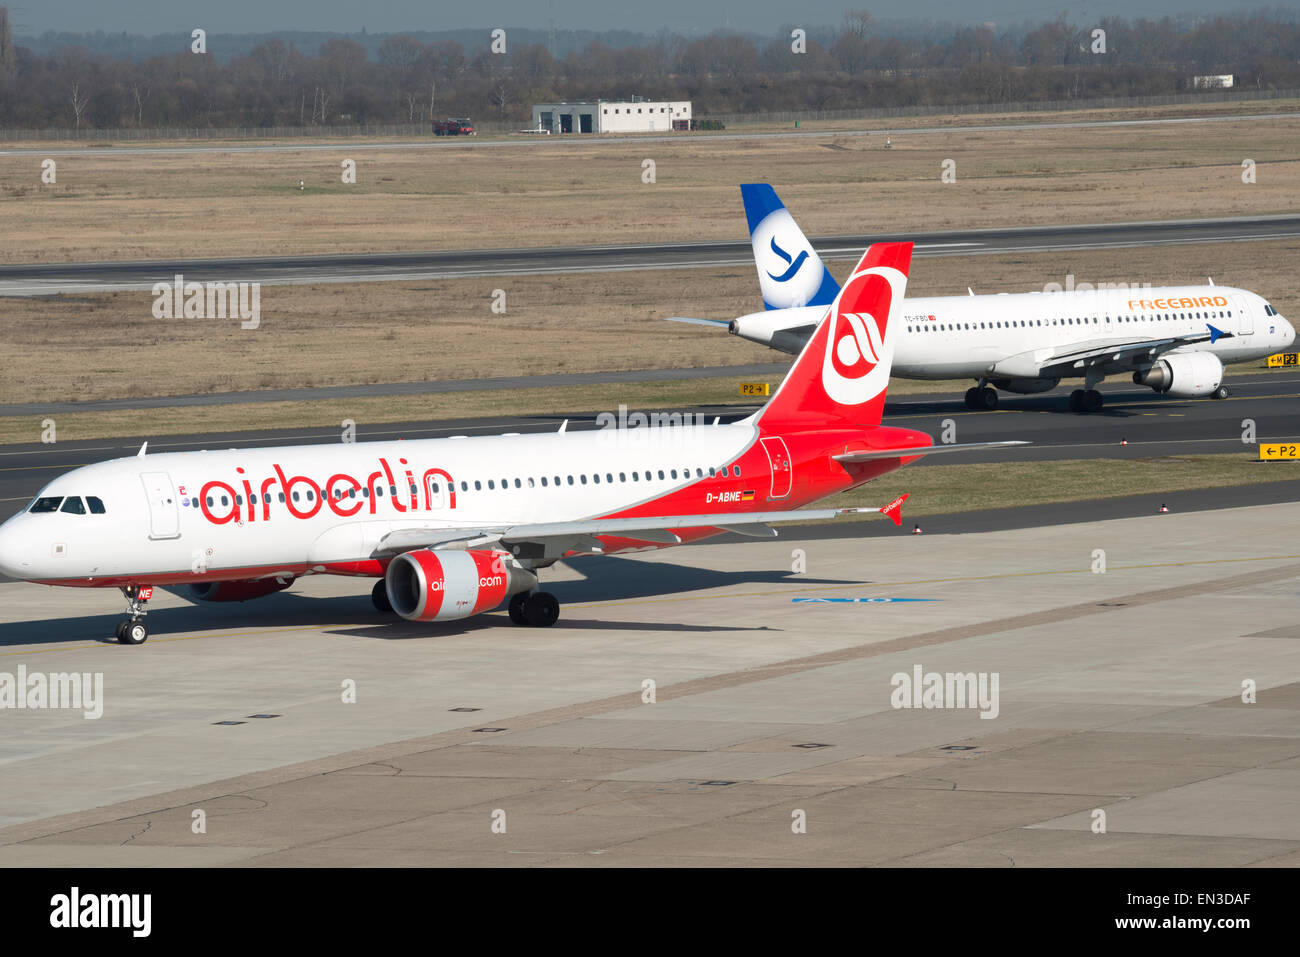 Airberlin & Freebird Airbus A320 airliners - Stock Image